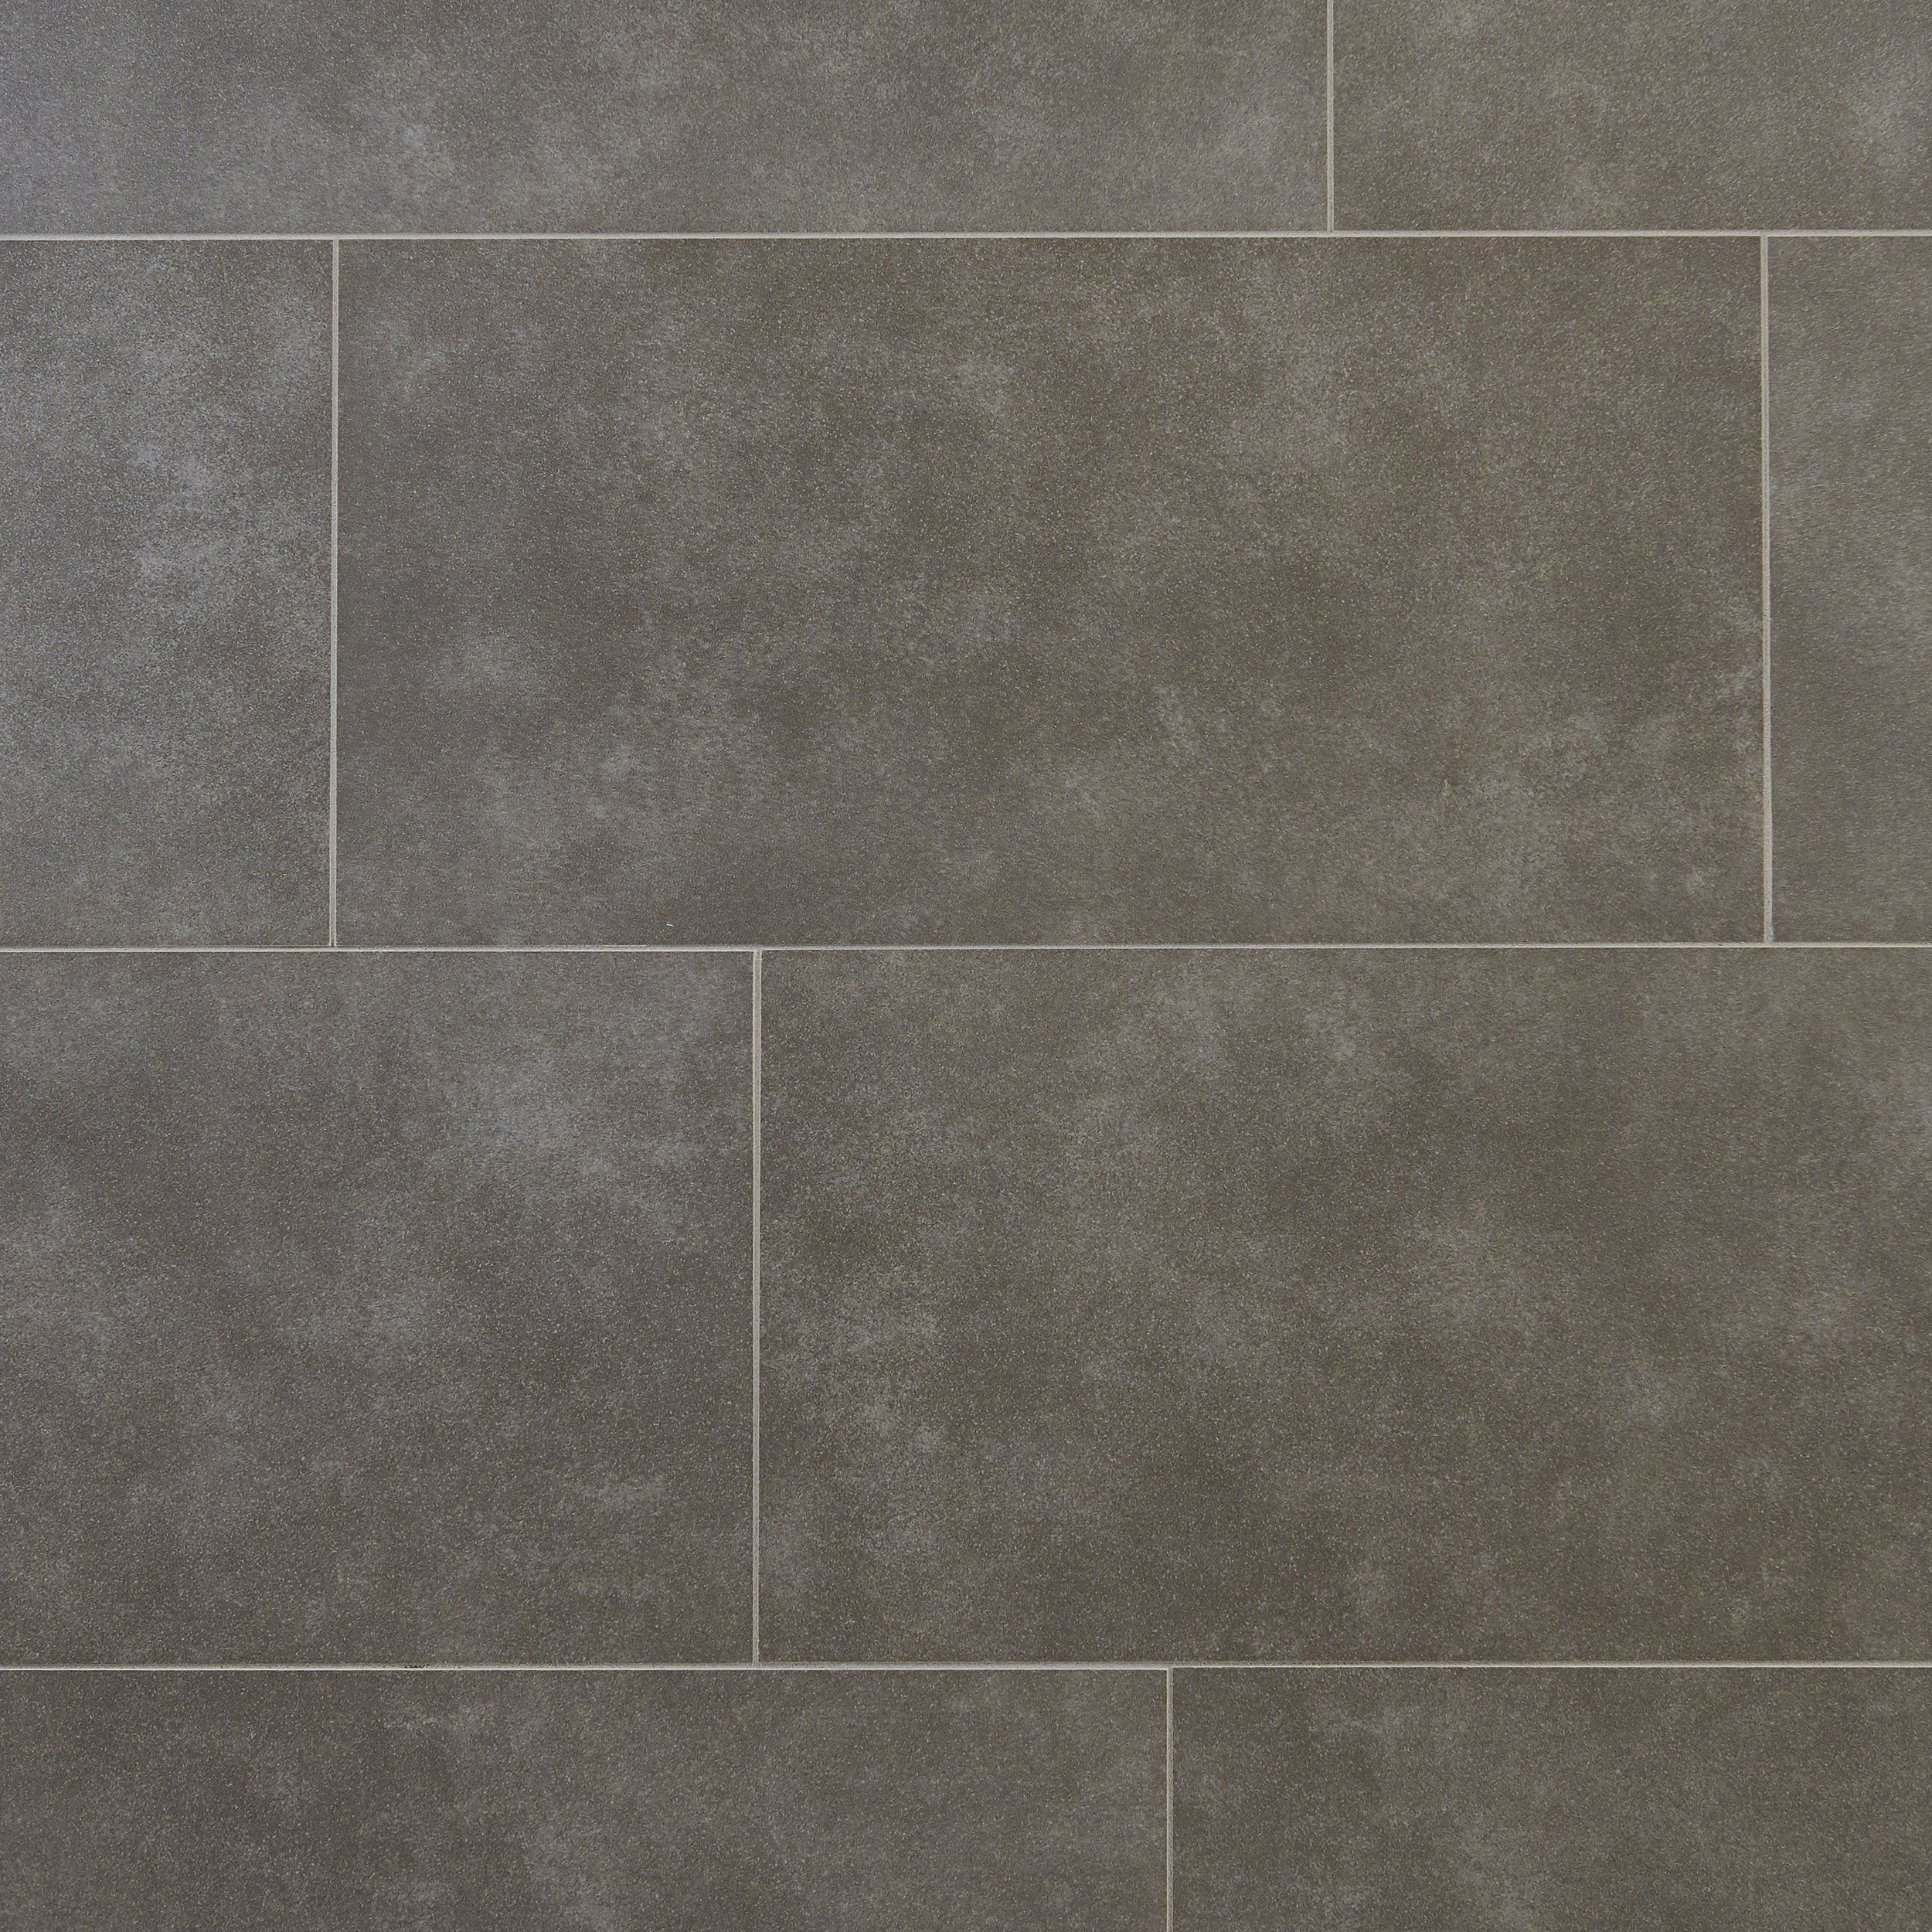 Concrete Gray Ceramic Tile Floor Decor In 2020 Tile Layout Flooring Porcelain Tile